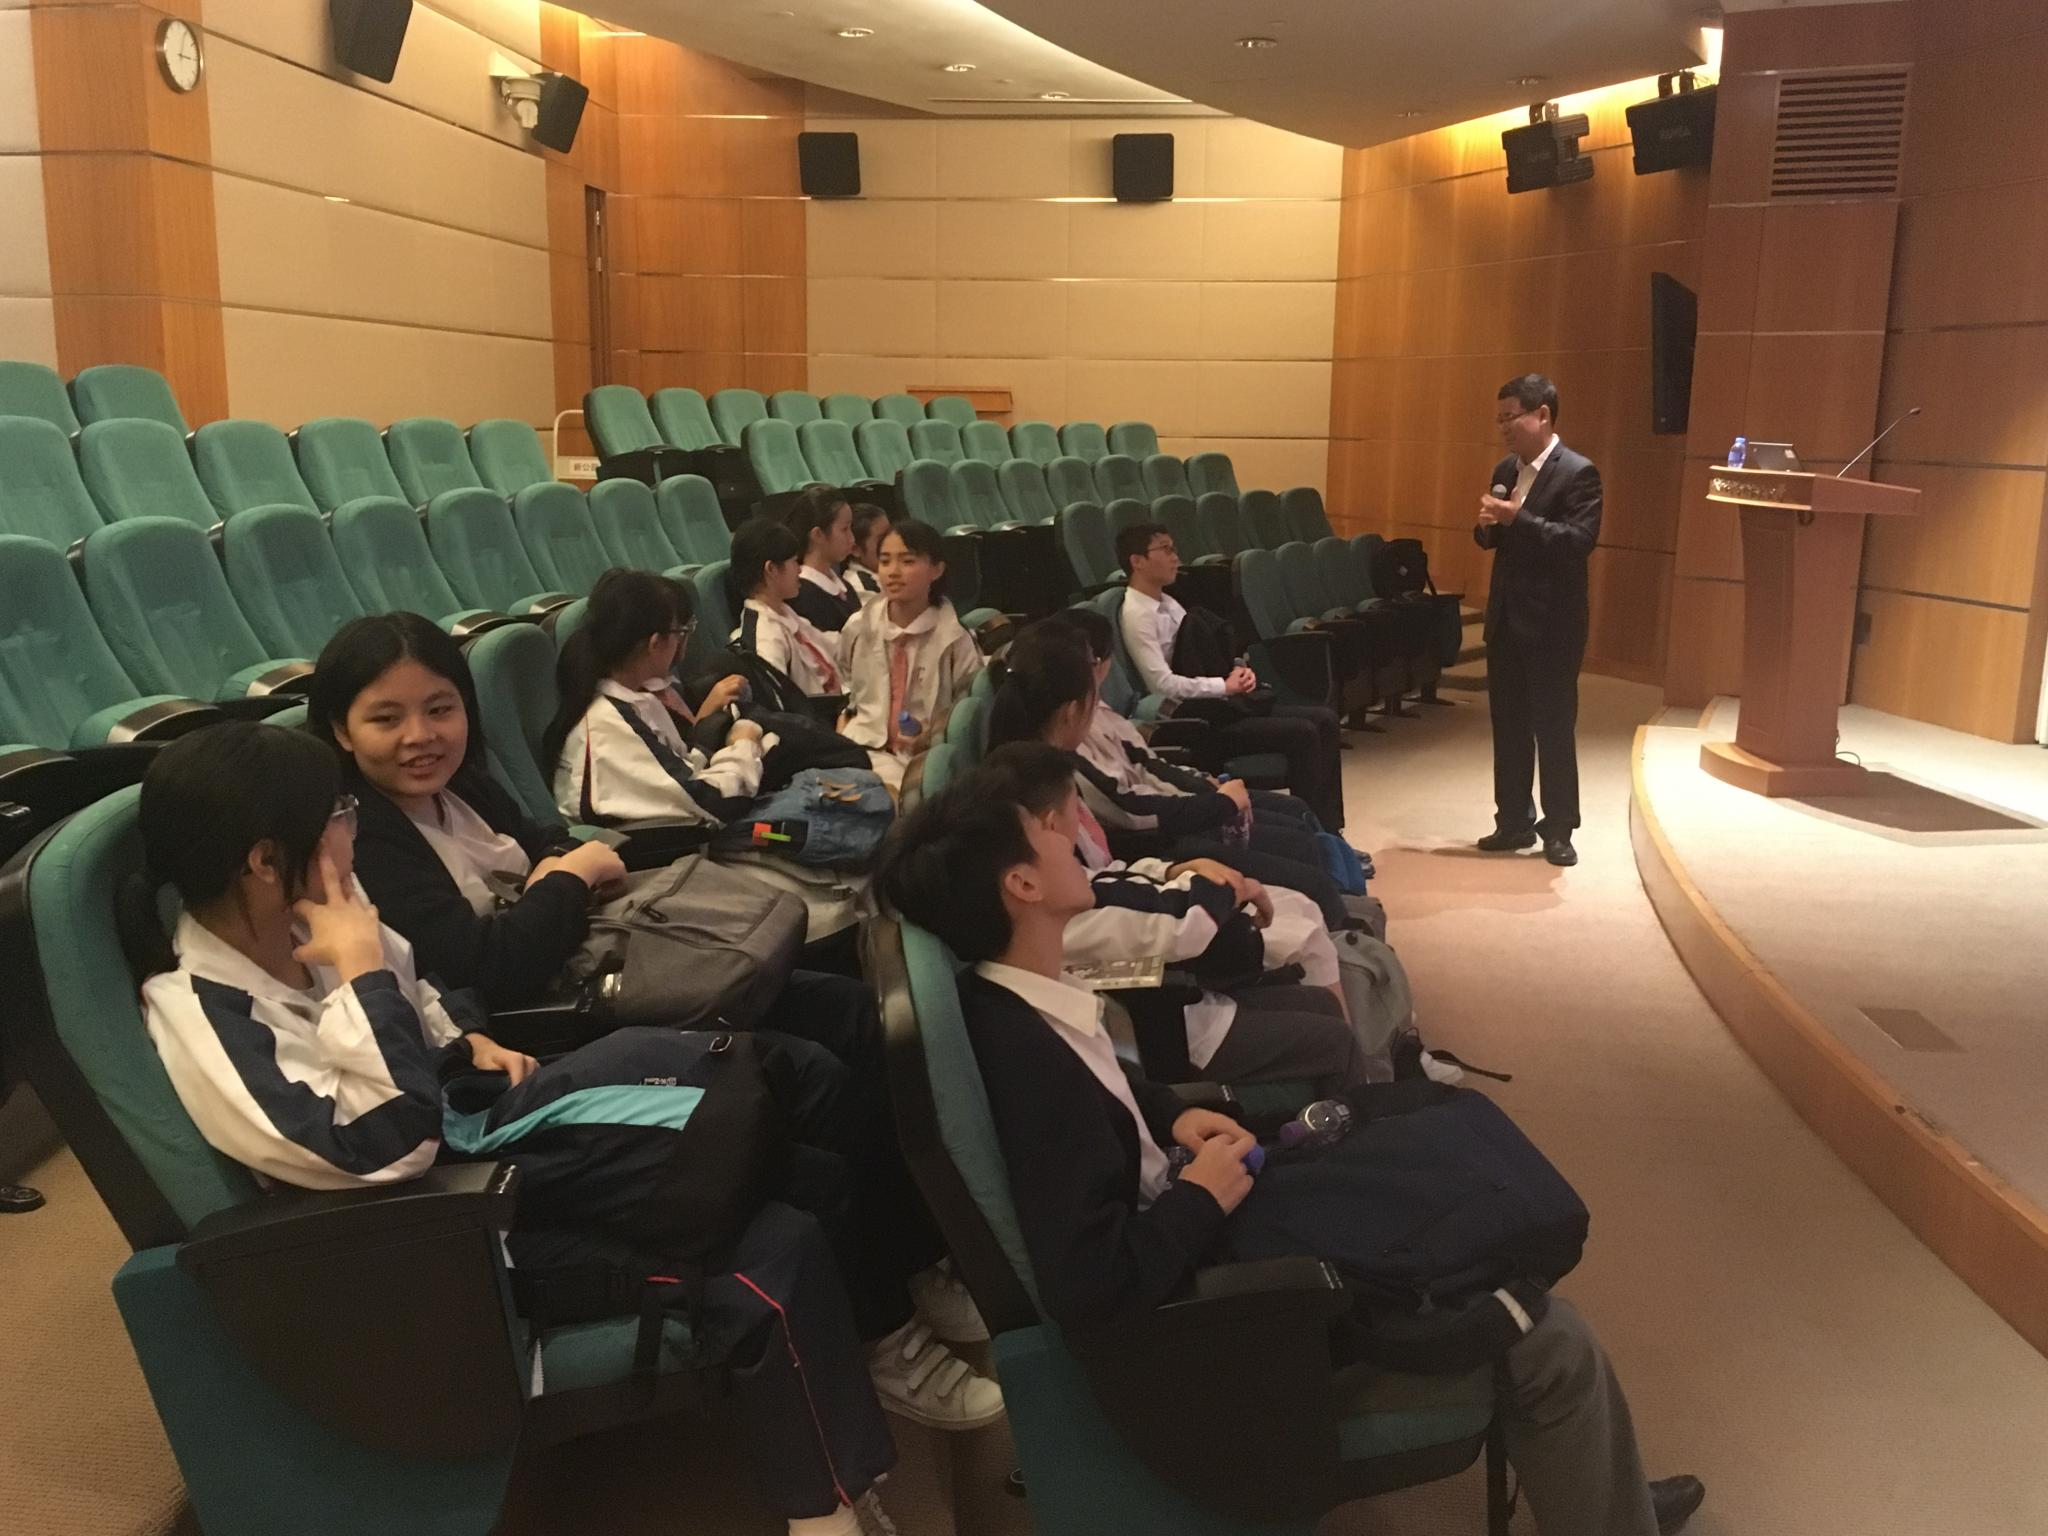 Students were very concentrated on the talk about 'The Belt and Road Initiative' and the future of Hong Kong.